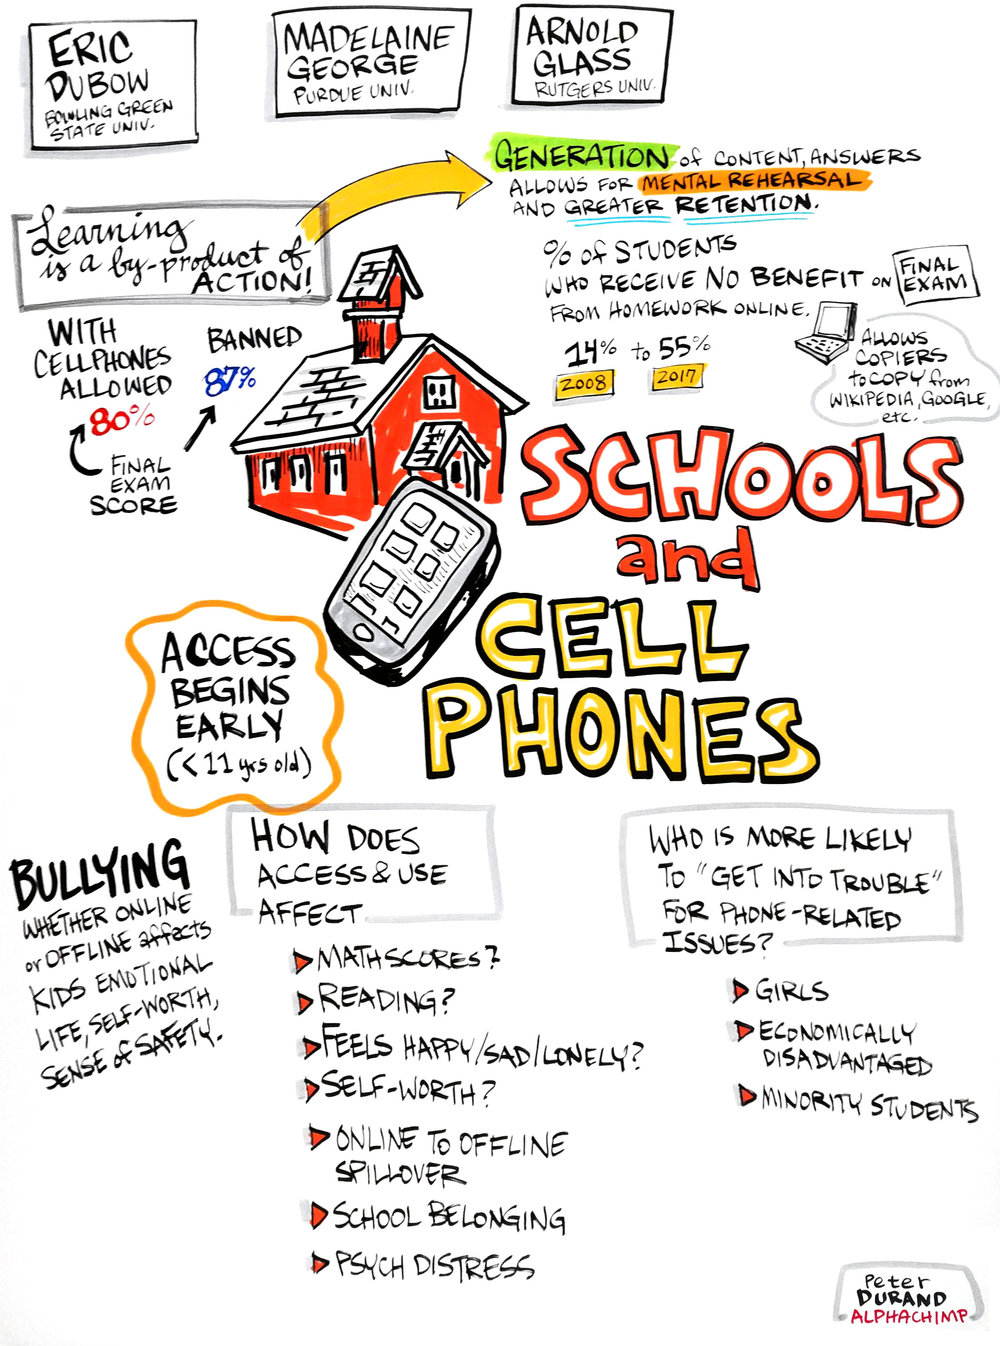 Cellphones in Schools